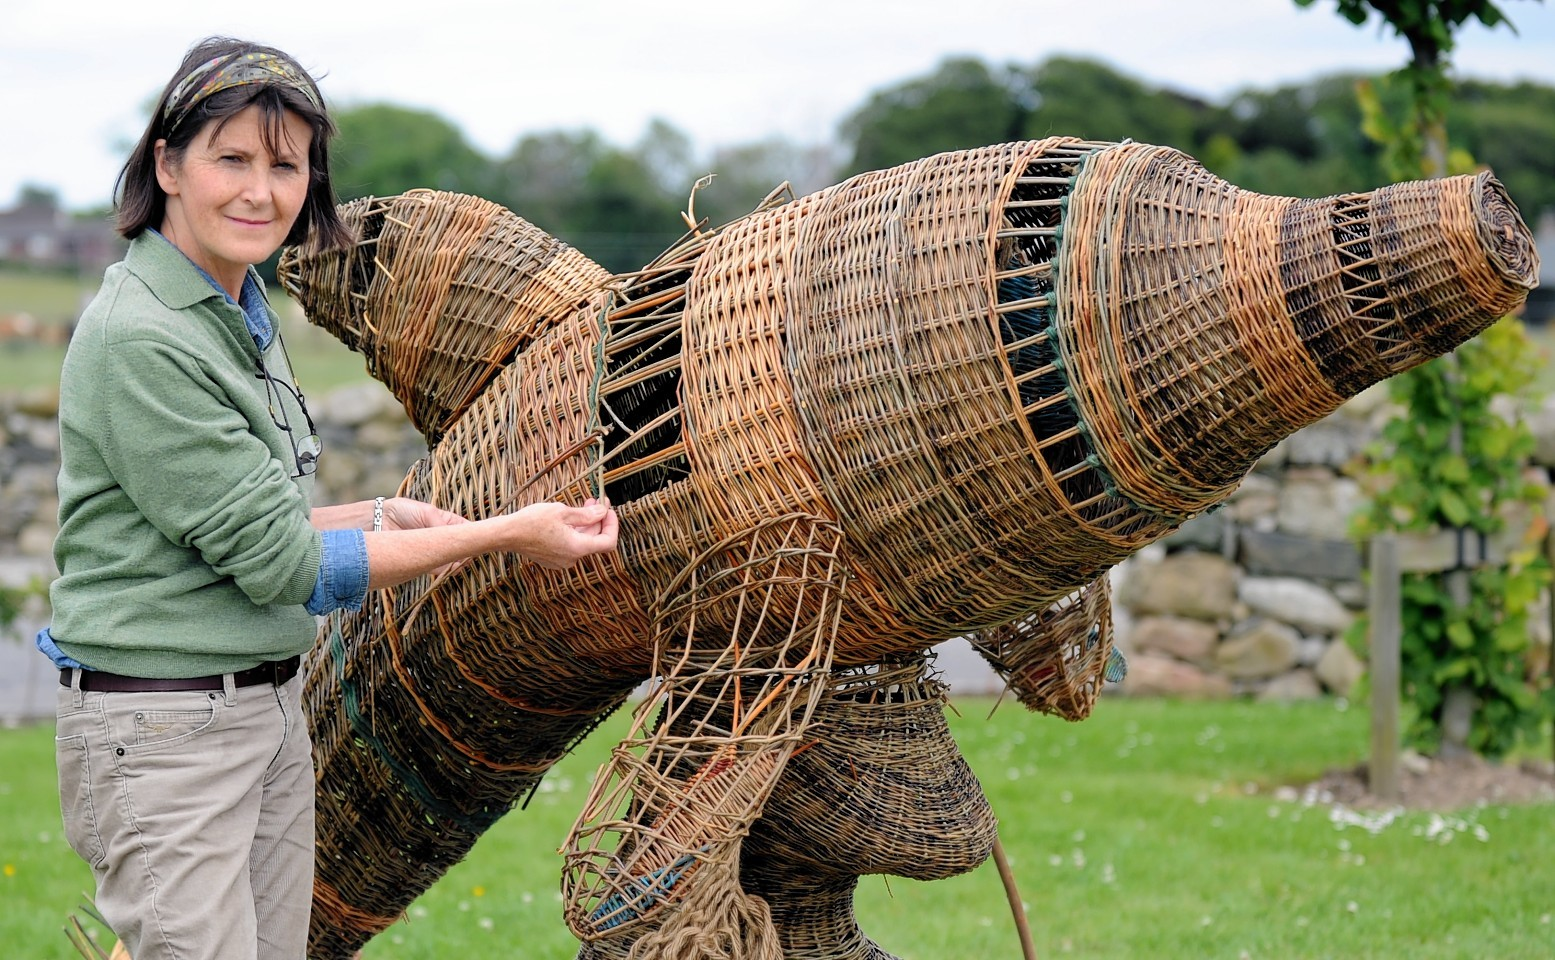 The wicker dolphin is repaired by Helen Jackson